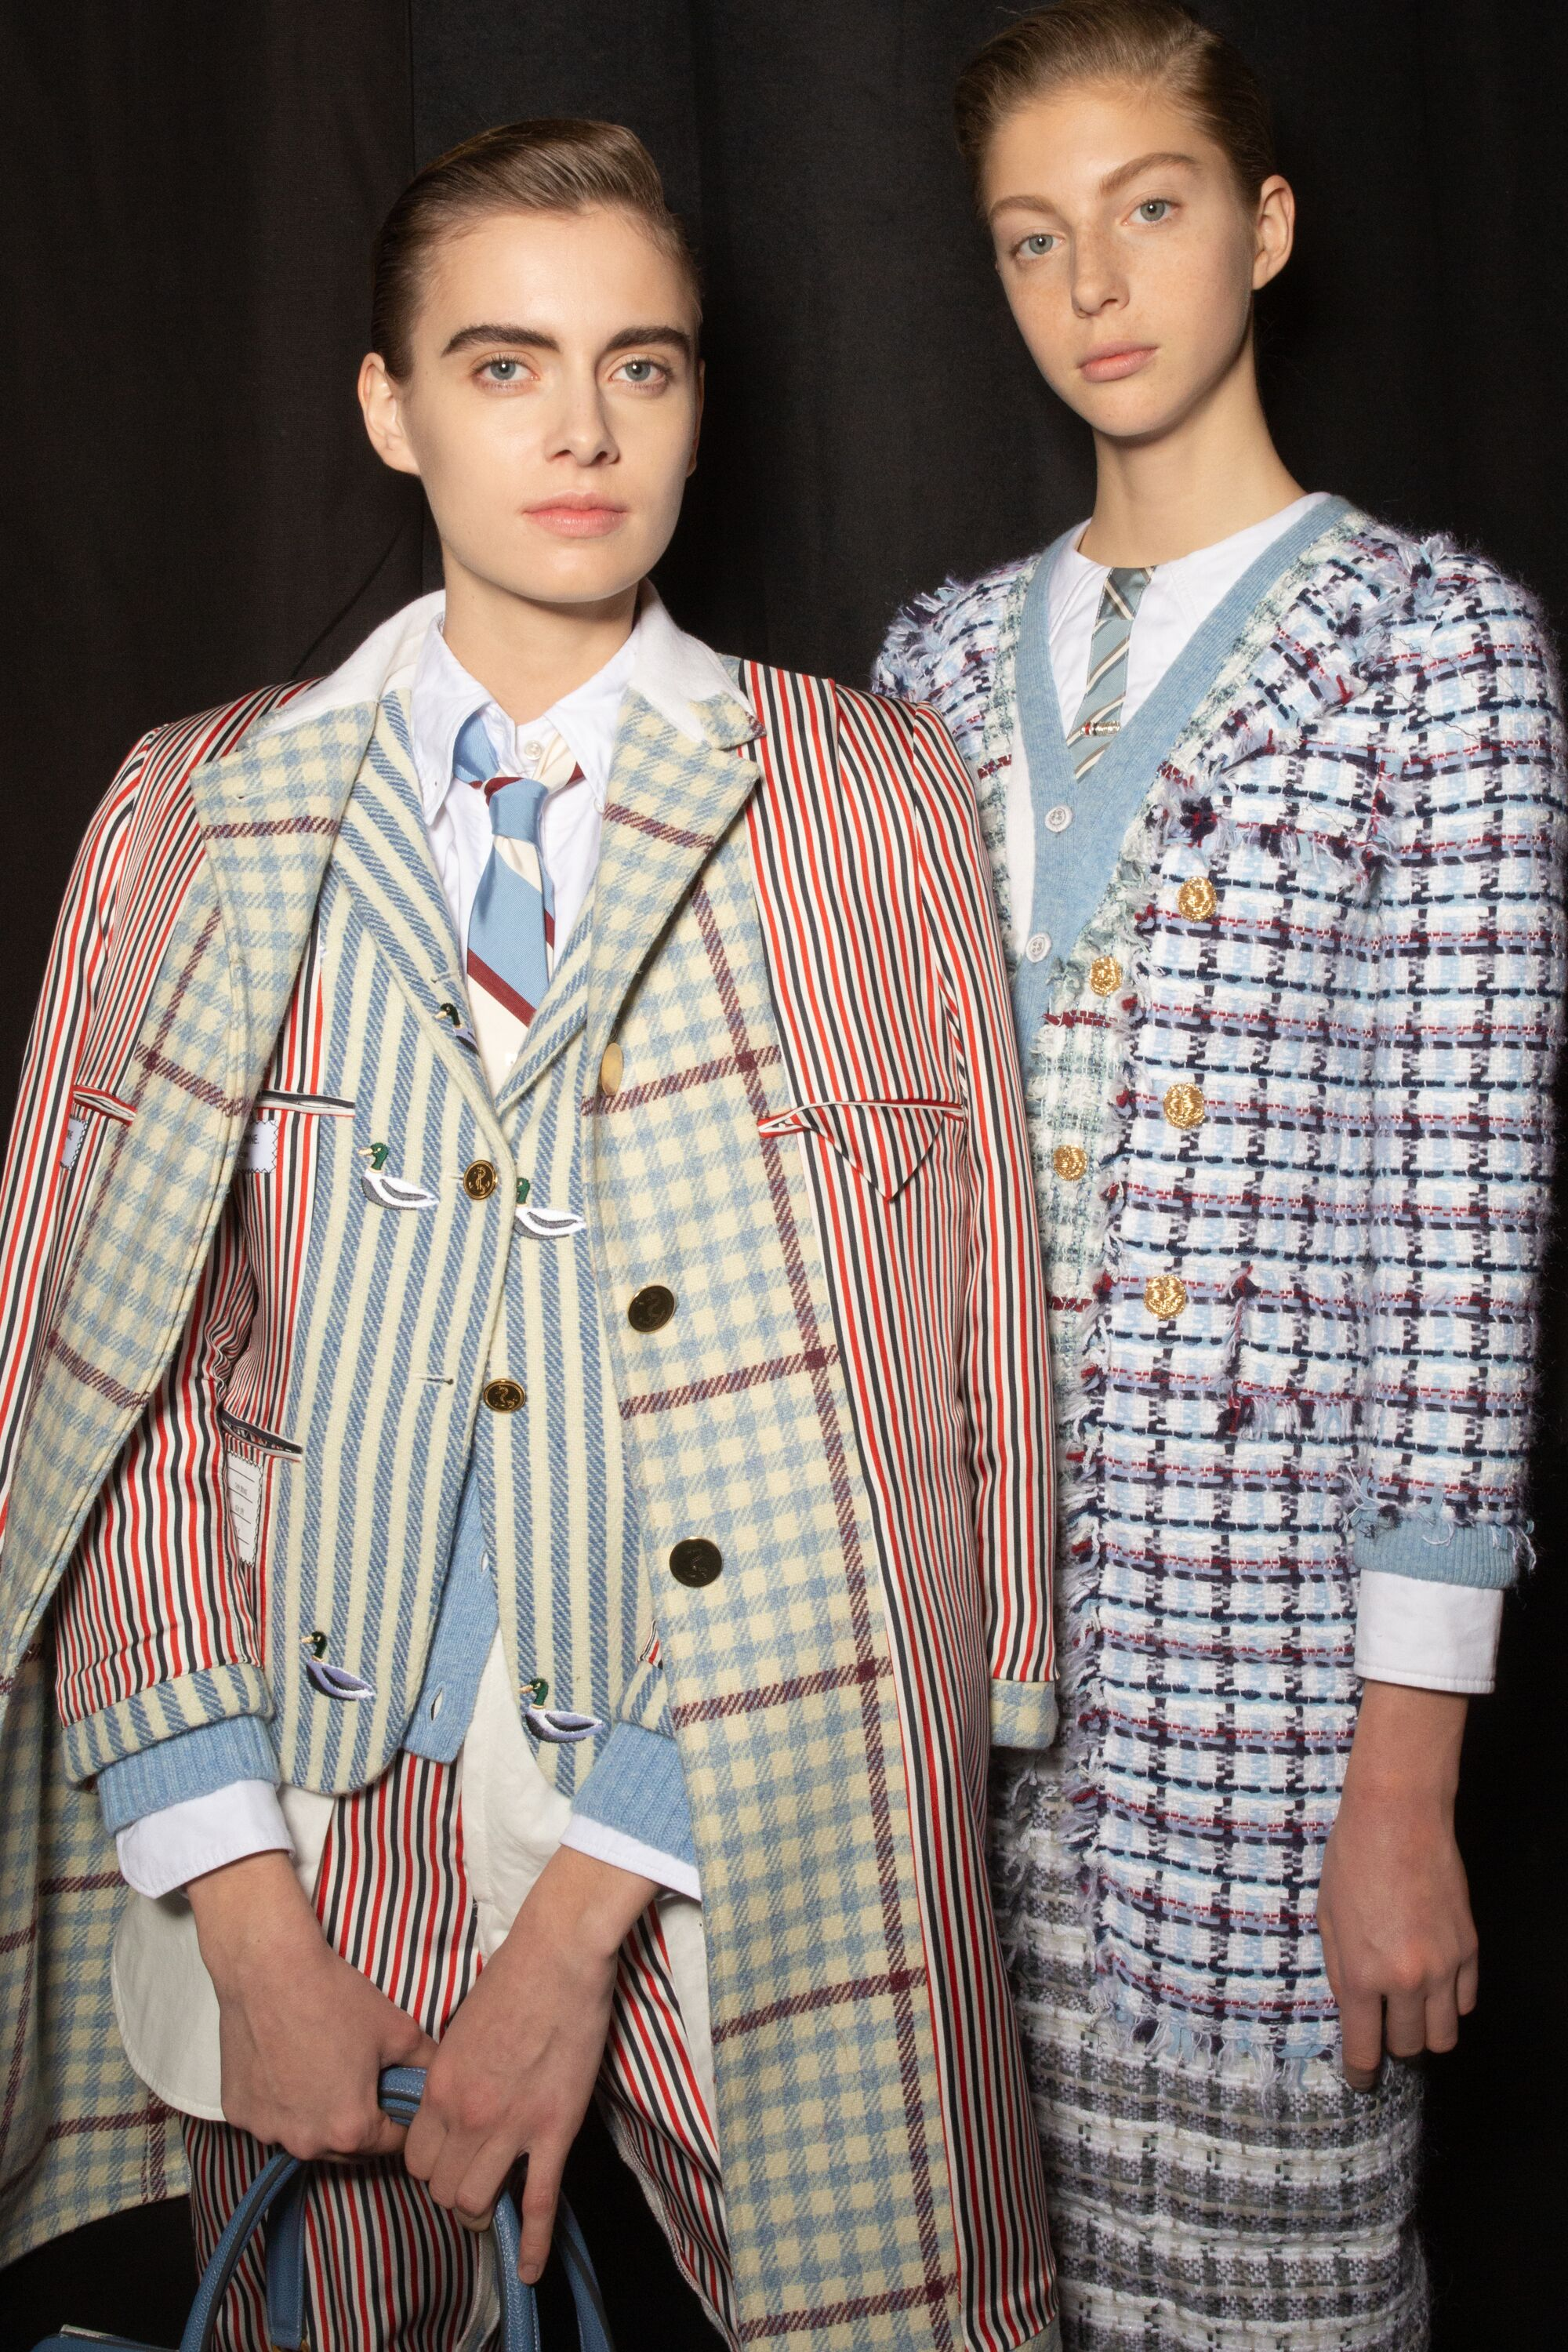 Thom Browne patterned suits aw19 pfw